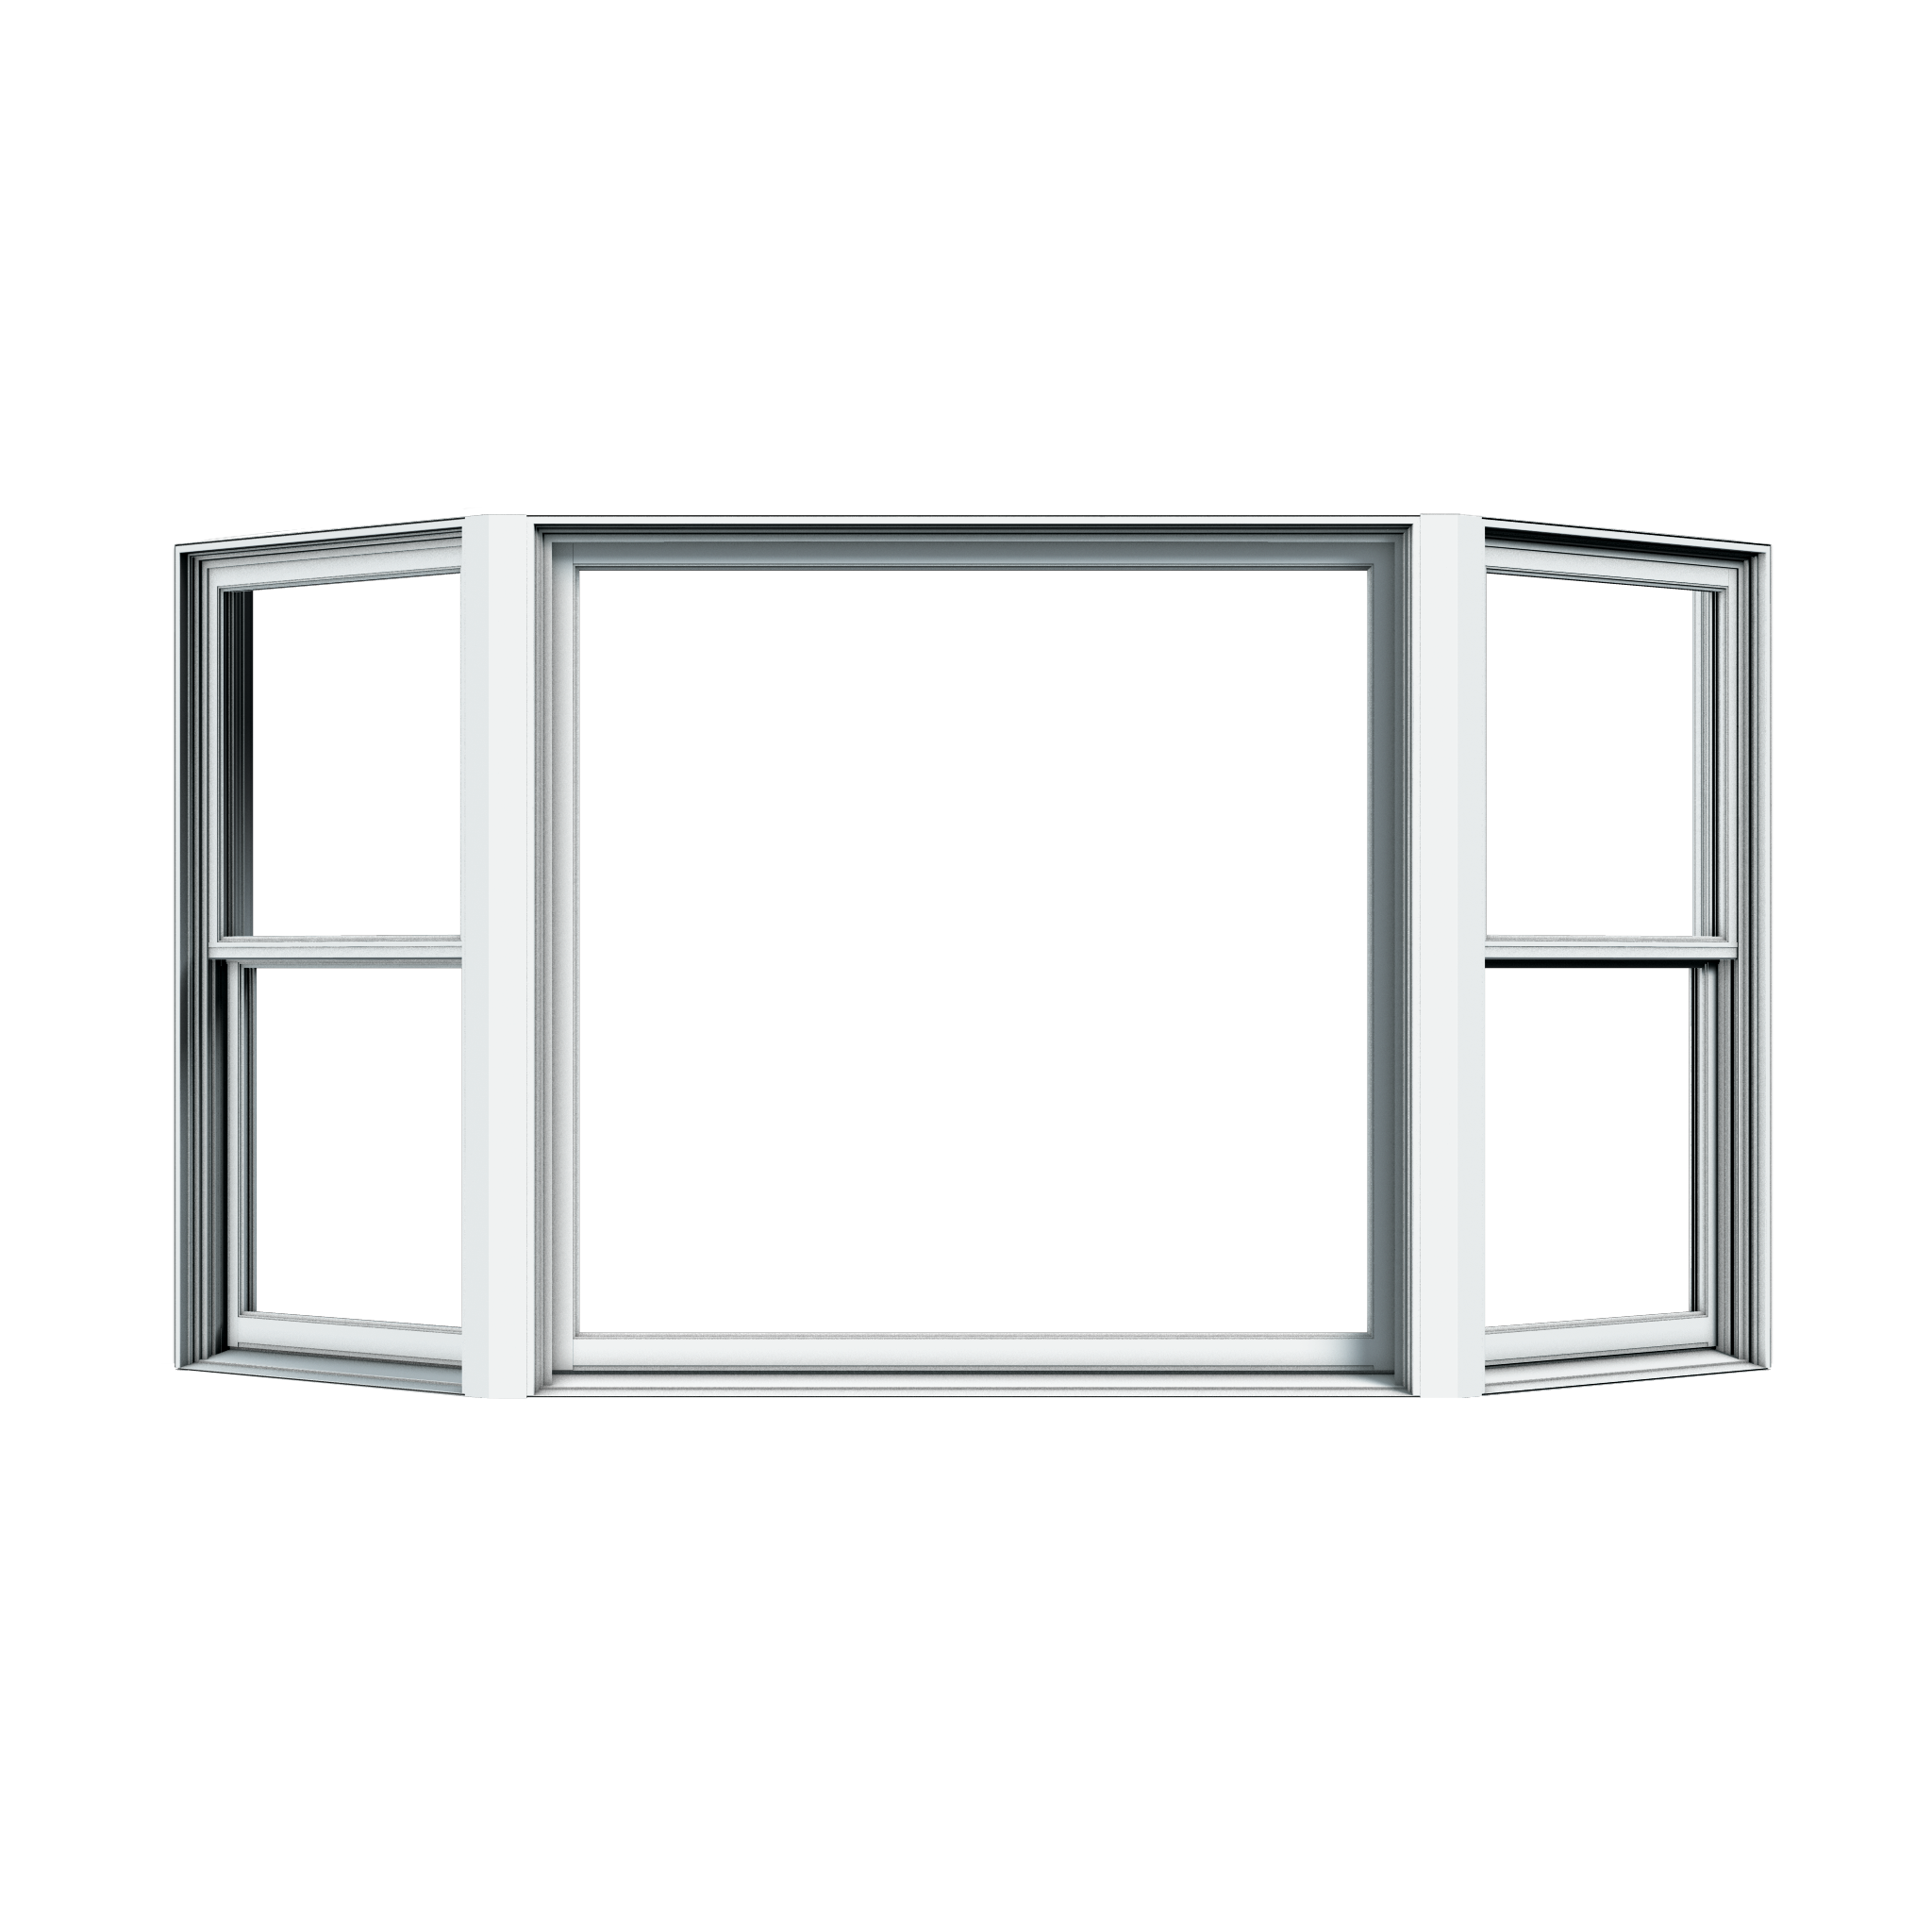 Bpm select the premier. White window frame png